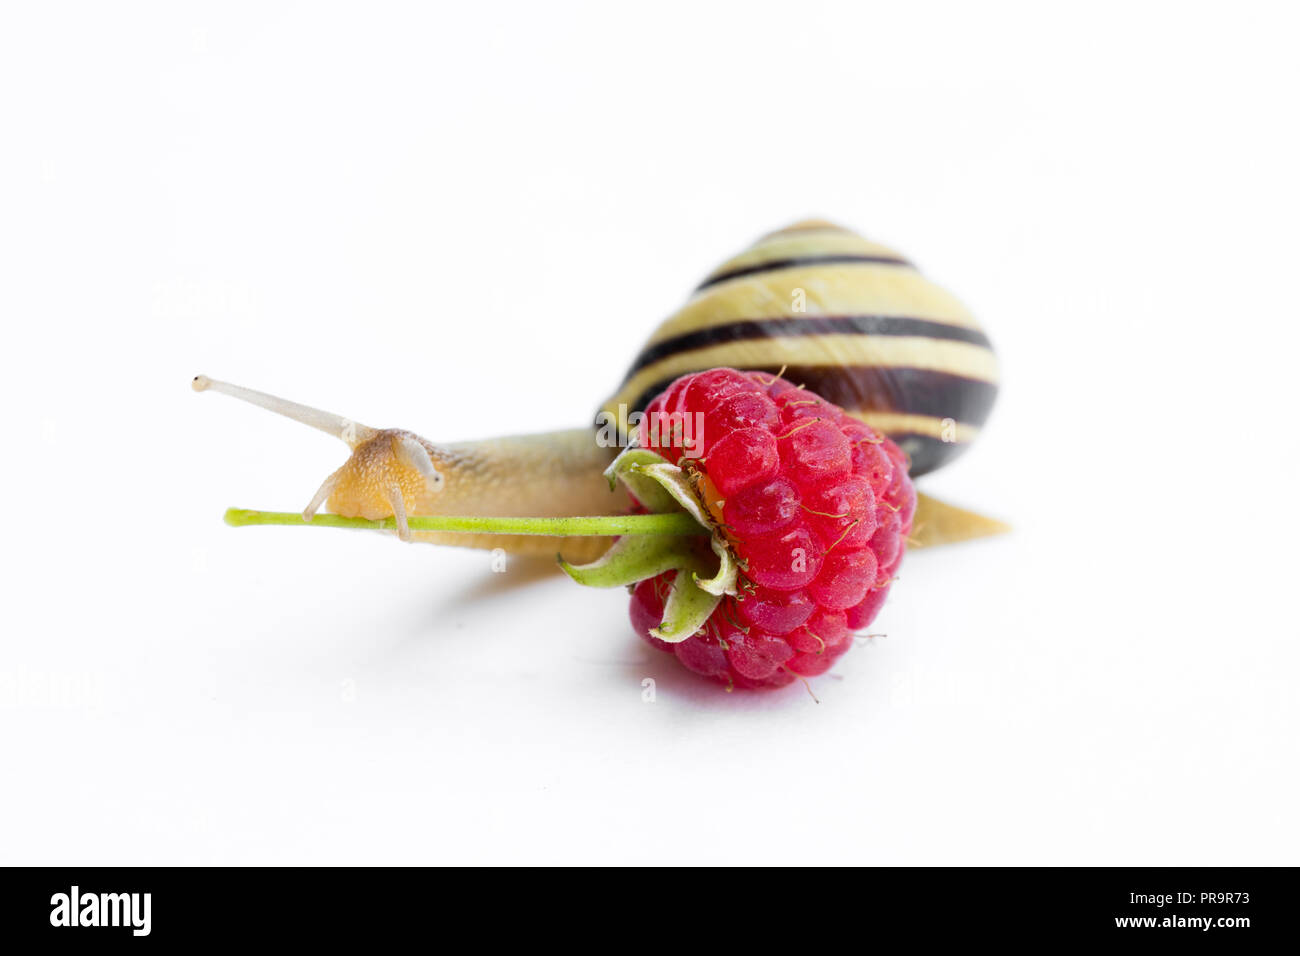 Snail  exploring raspberry isolated on white. Concept of healthy food. - Stock Image